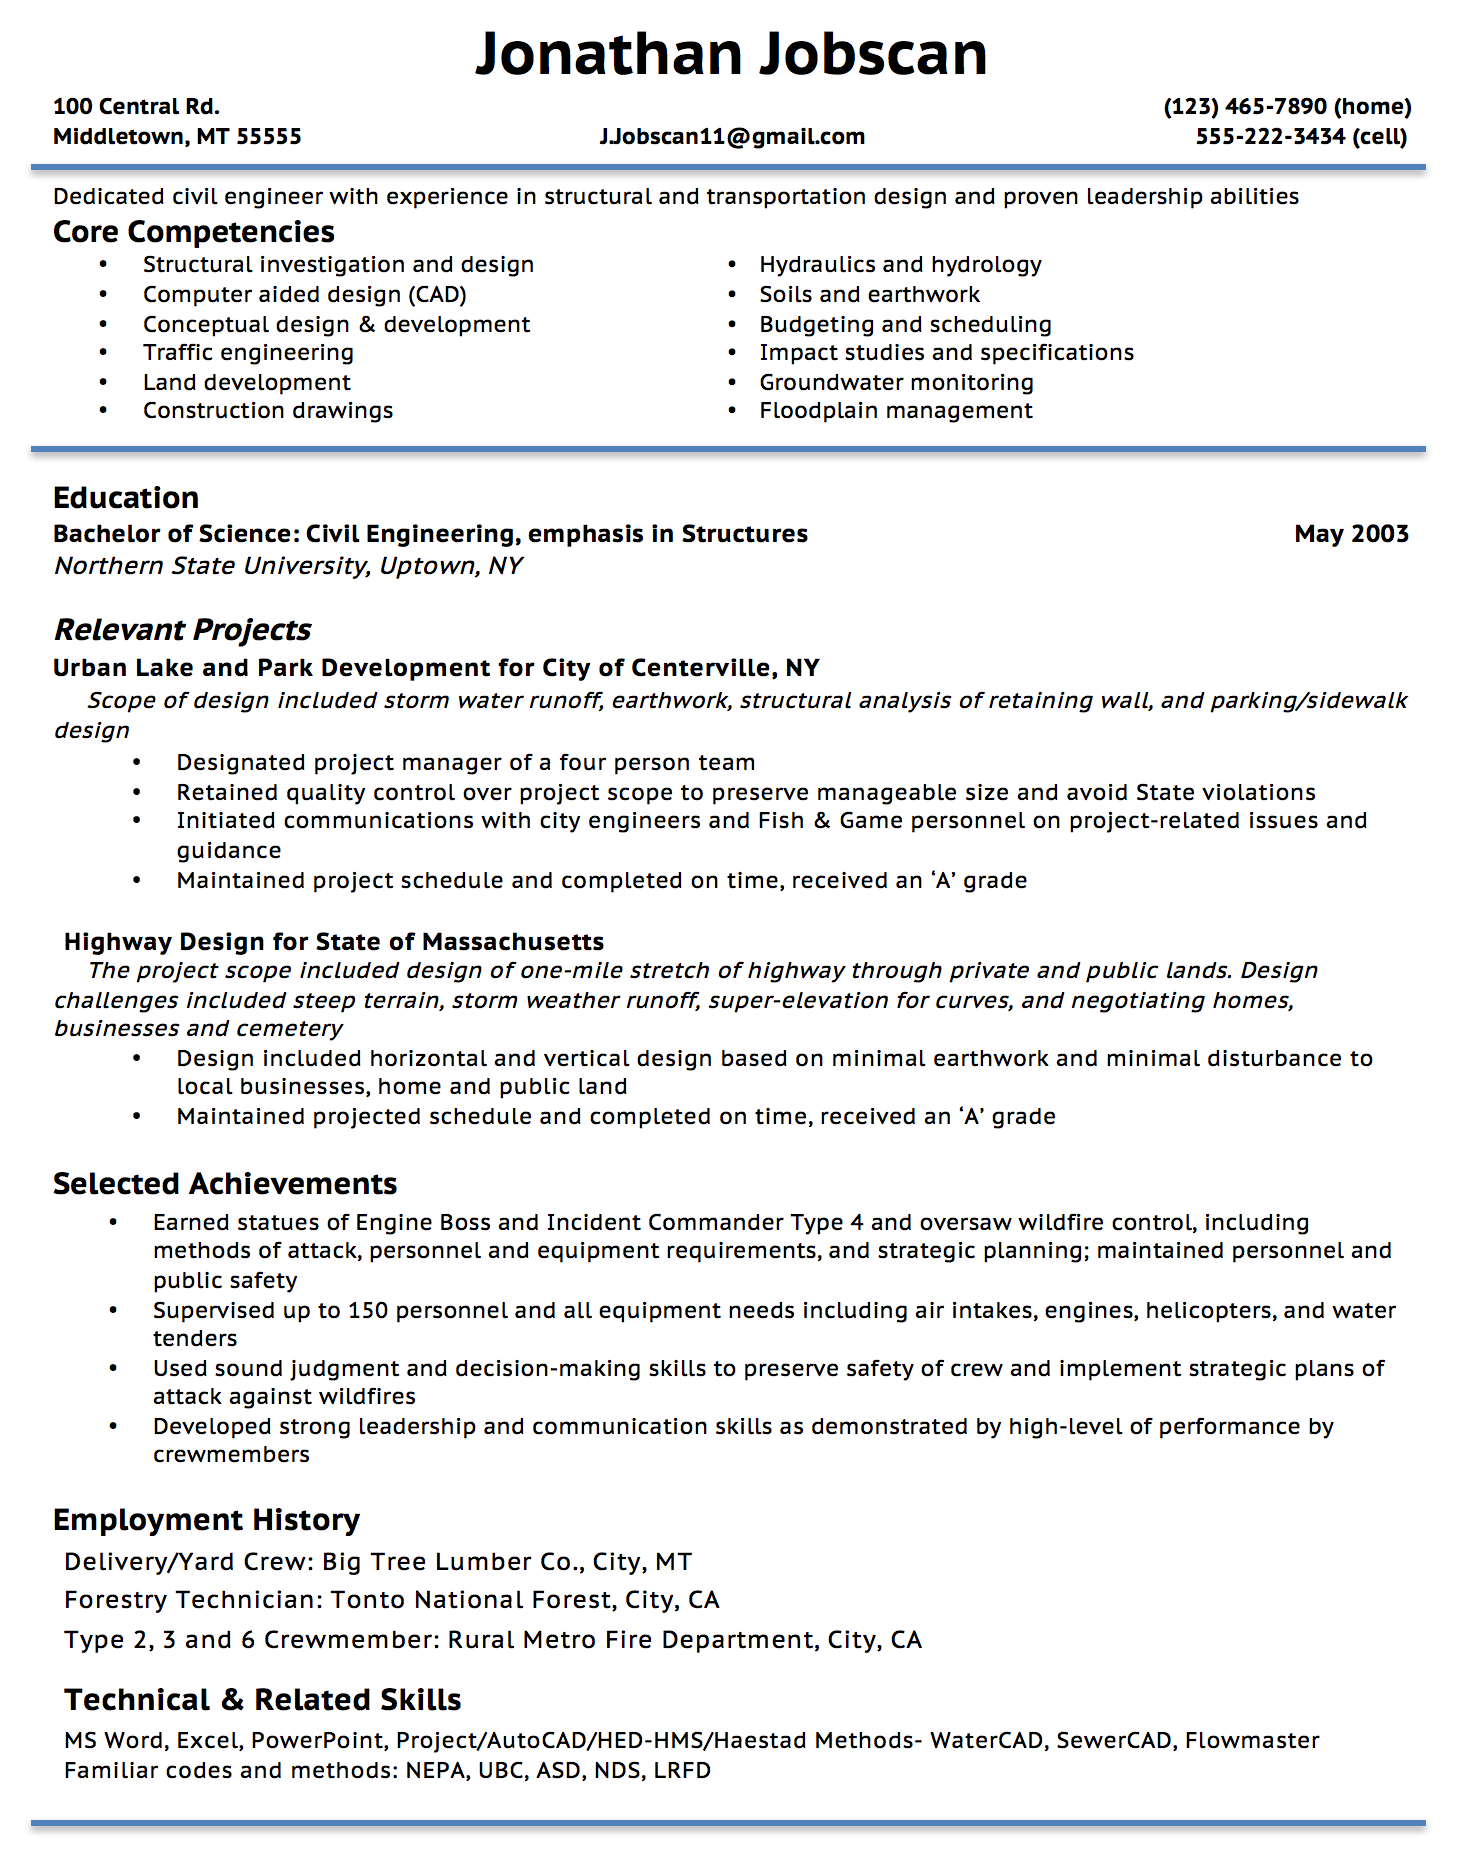 Opposenewapstandardsus  Unique Resume Writing Guide  Jobscan With Licious Example Of A Functional Resume Format With Delightful Resume Word Template Also Sample High School Resume In Addition Examples Of Resume Objectives And Cover Letter For A Resume As Well As Resume For Graduate School Additionally Human Resources Resume From Jobscanco With Opposenewapstandardsus  Licious Resume Writing Guide  Jobscan With Delightful Example Of A Functional Resume Format And Unique Resume Word Template Also Sample High School Resume In Addition Examples Of Resume Objectives From Jobscanco